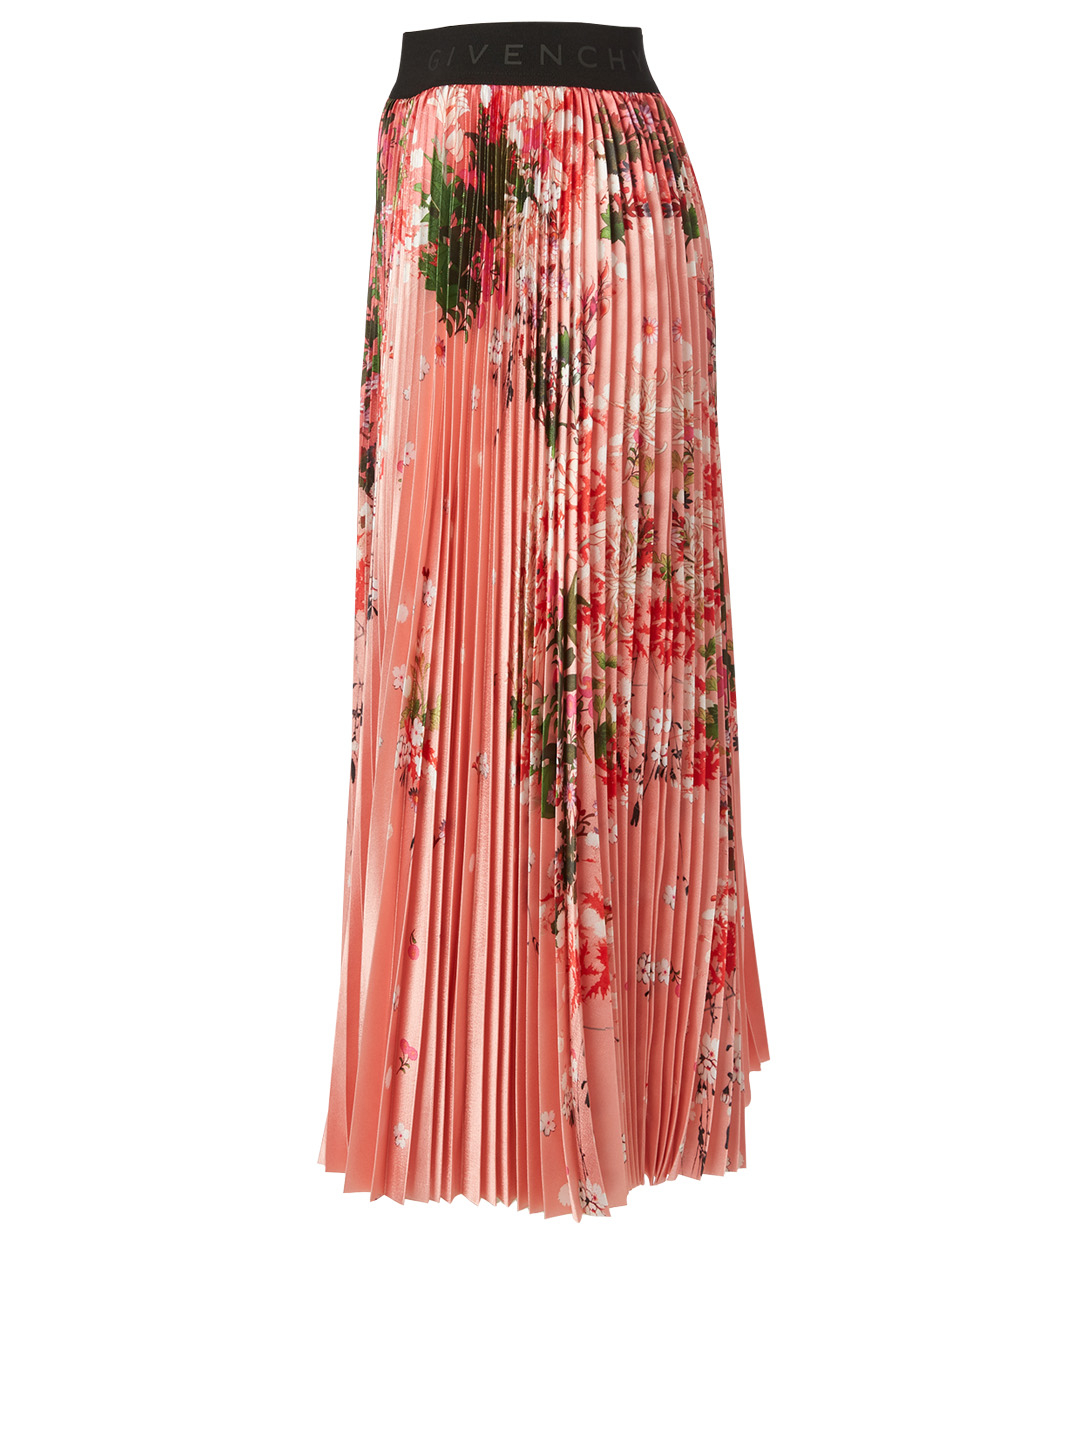 GIVENCHY Pleated Midi Skirt In Floral Print Women's Pink